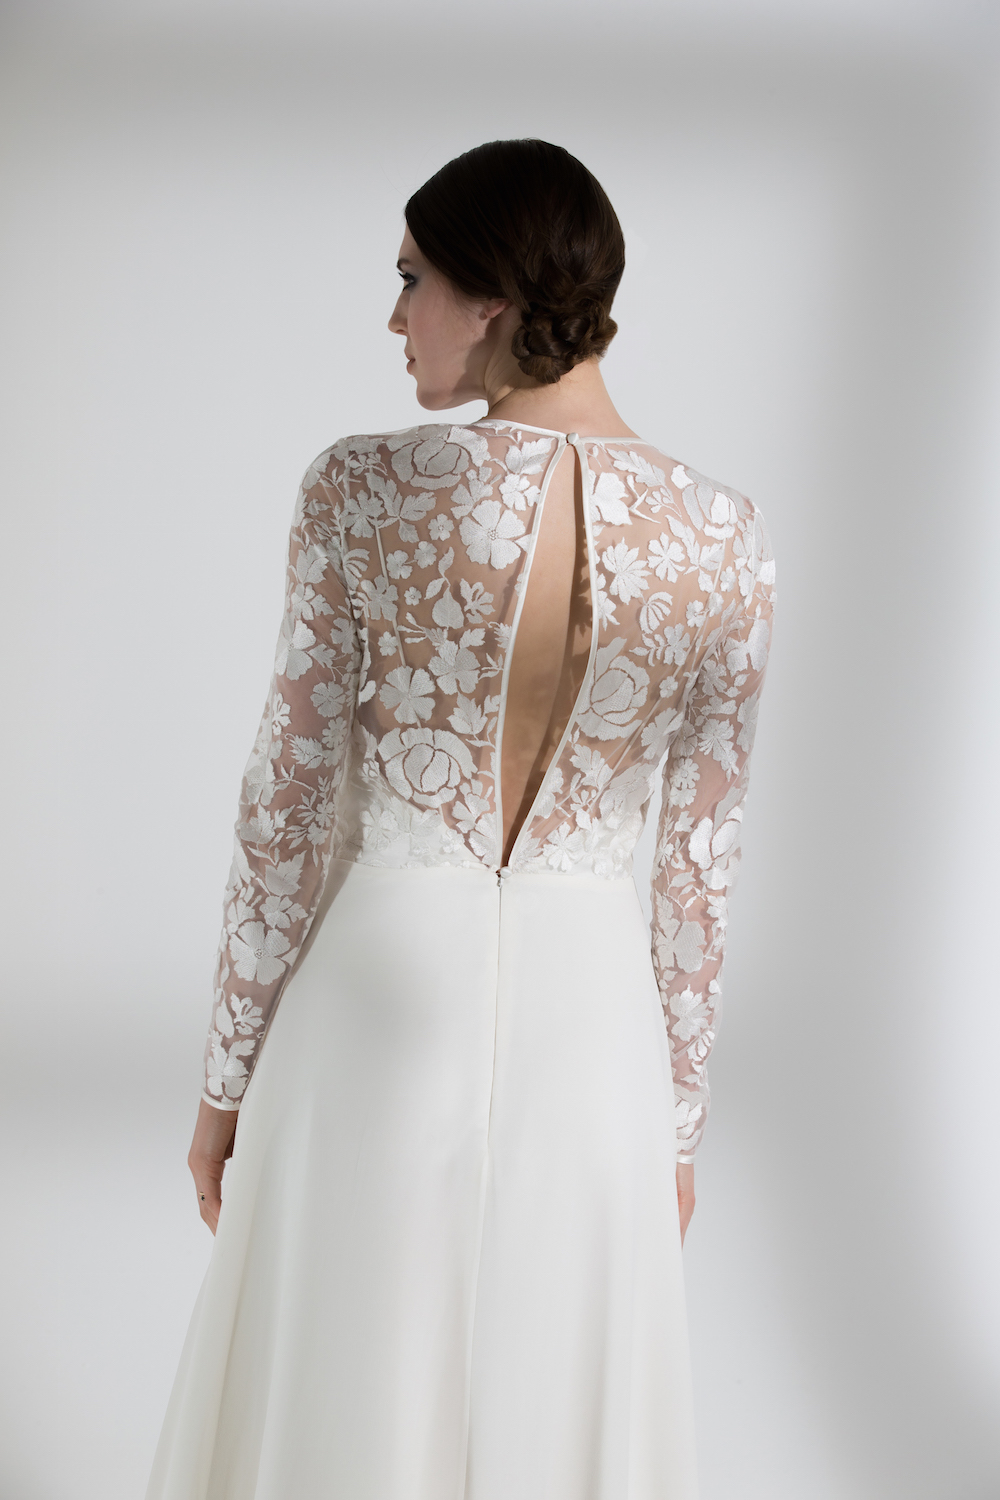 JASMIN DRESS | WEDDING DRESS BY HALFPENNY LONDON